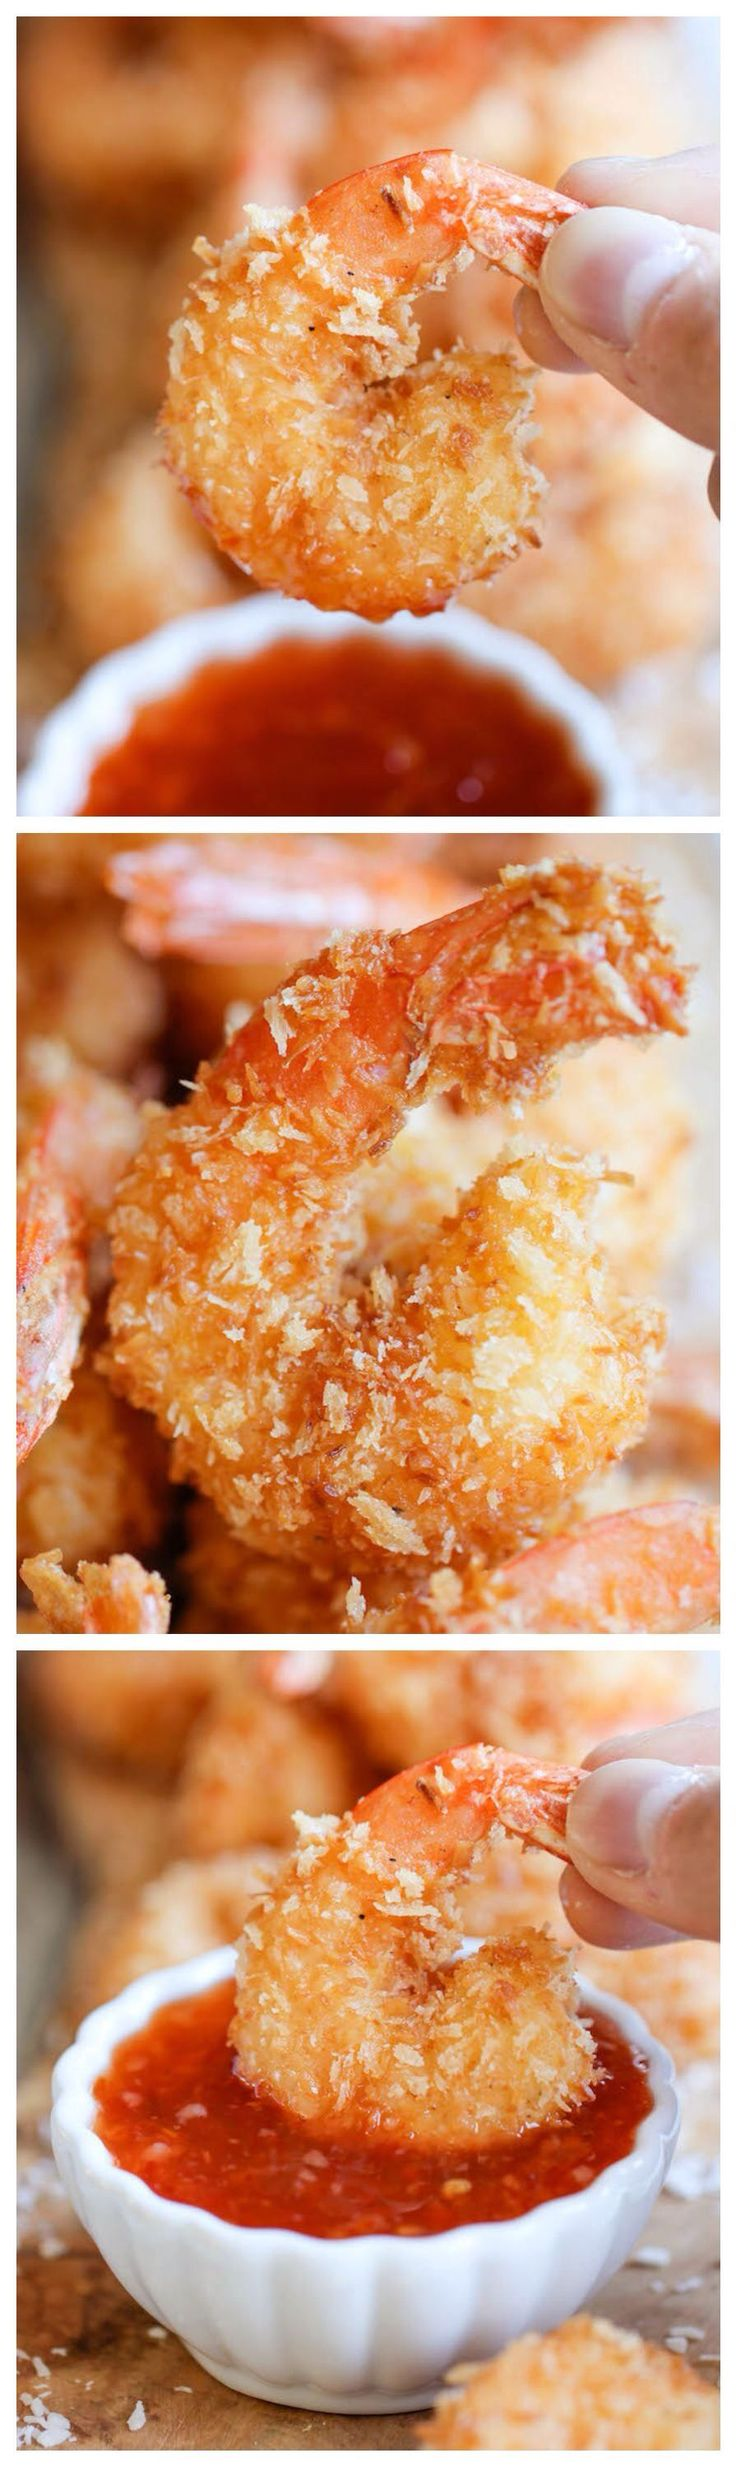 Easy coconut shrimp recipe! | You will love this tasty shrimp with a sauce. #Homemaderecipes